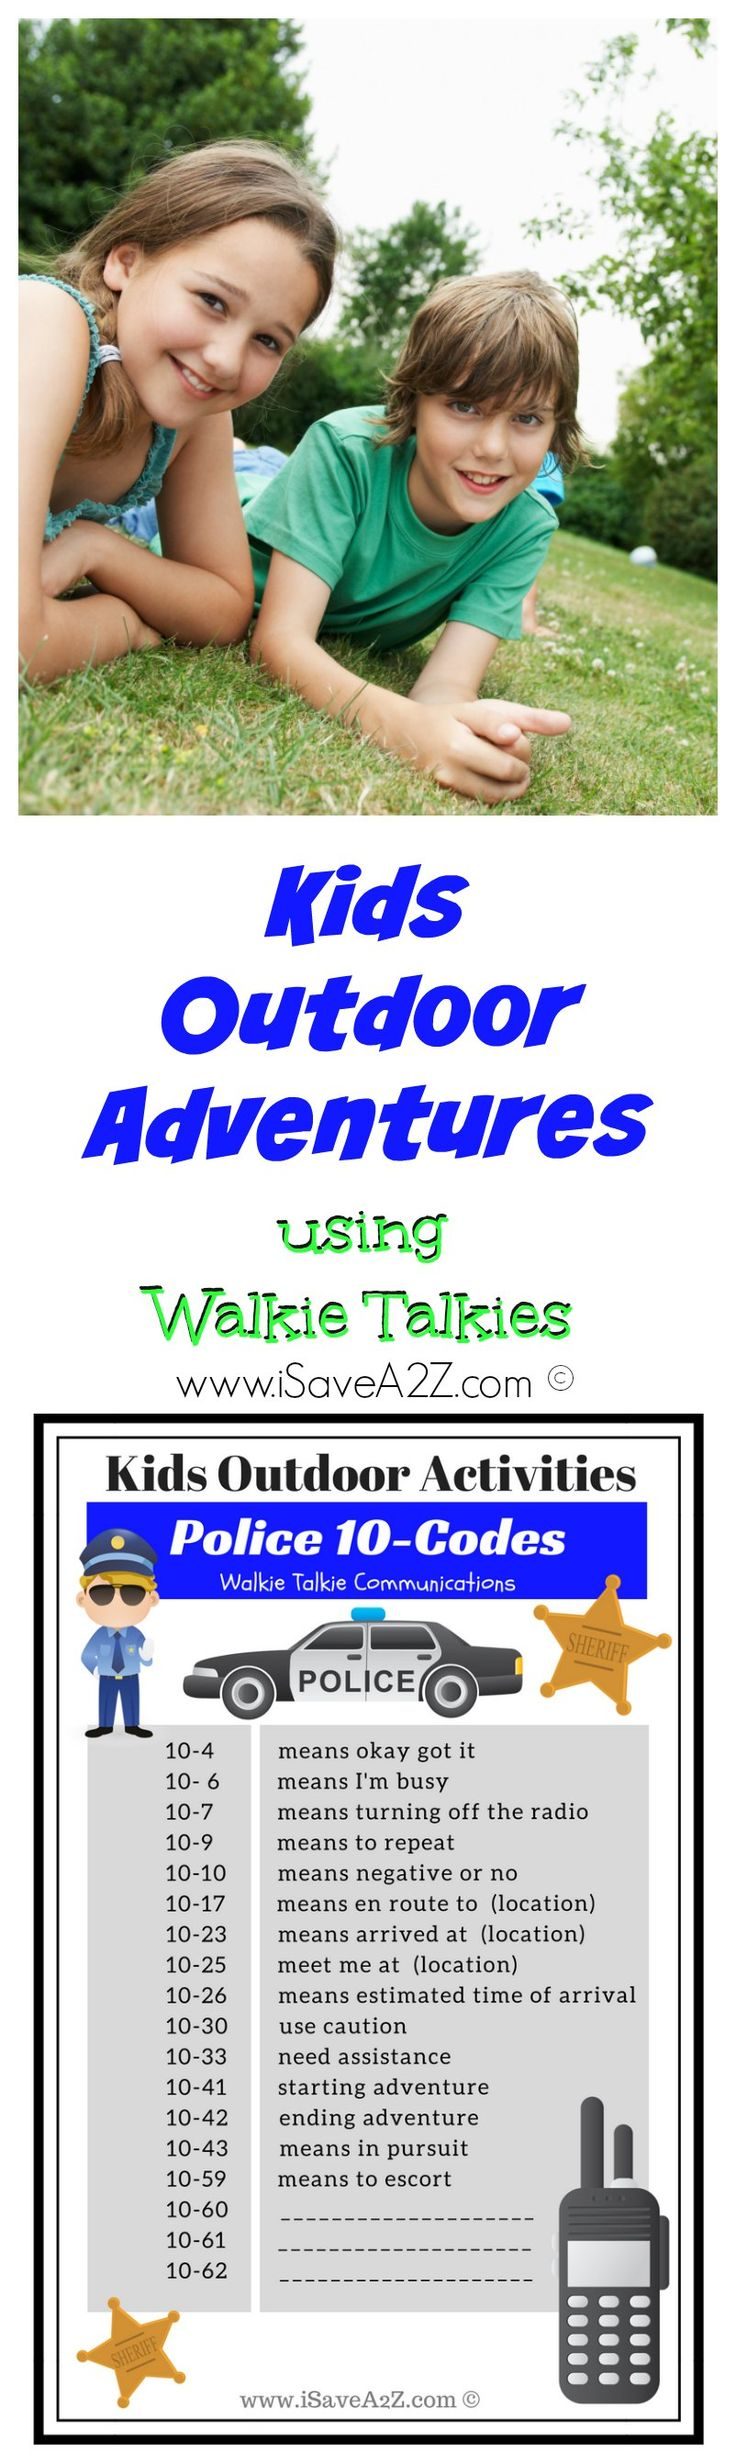 Kids Outdoor Adventure Activities using Walkie Talkies that includes a list of game ideas and a free printable for kid friendly police 10-codes for fun radio talk!